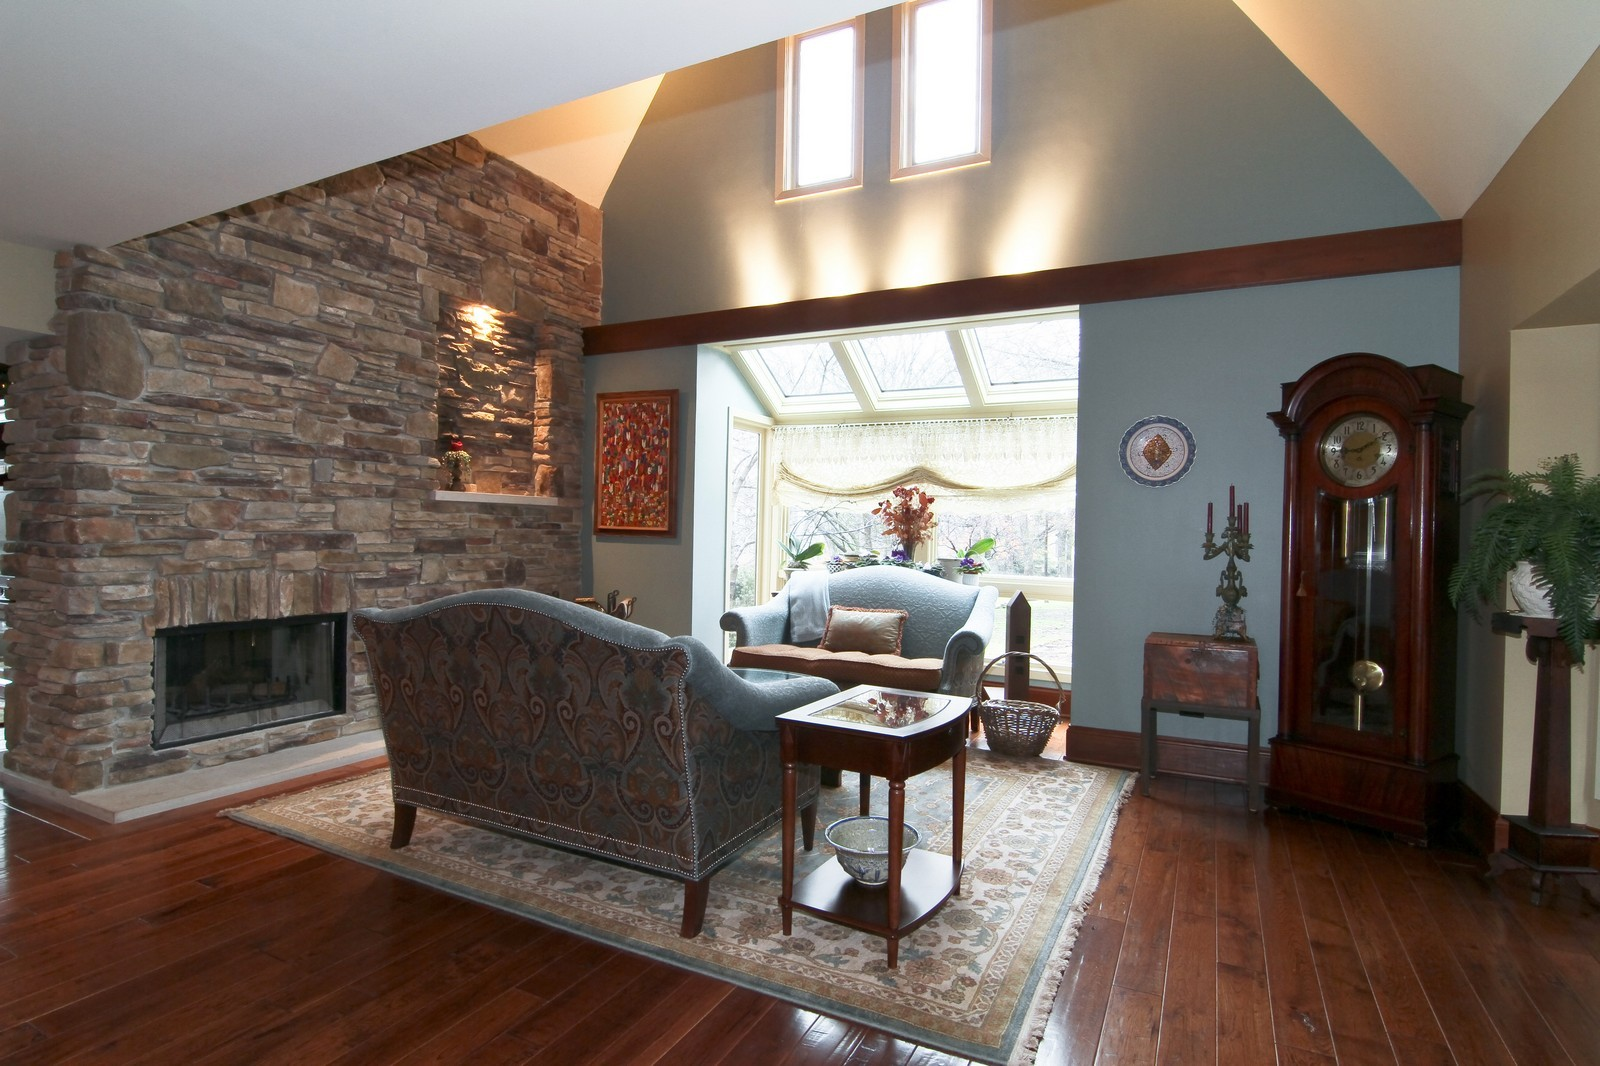 Real Estate Photography - 1160 Mistwood Ln, Downers Grove, IL, 60515 - Living Room